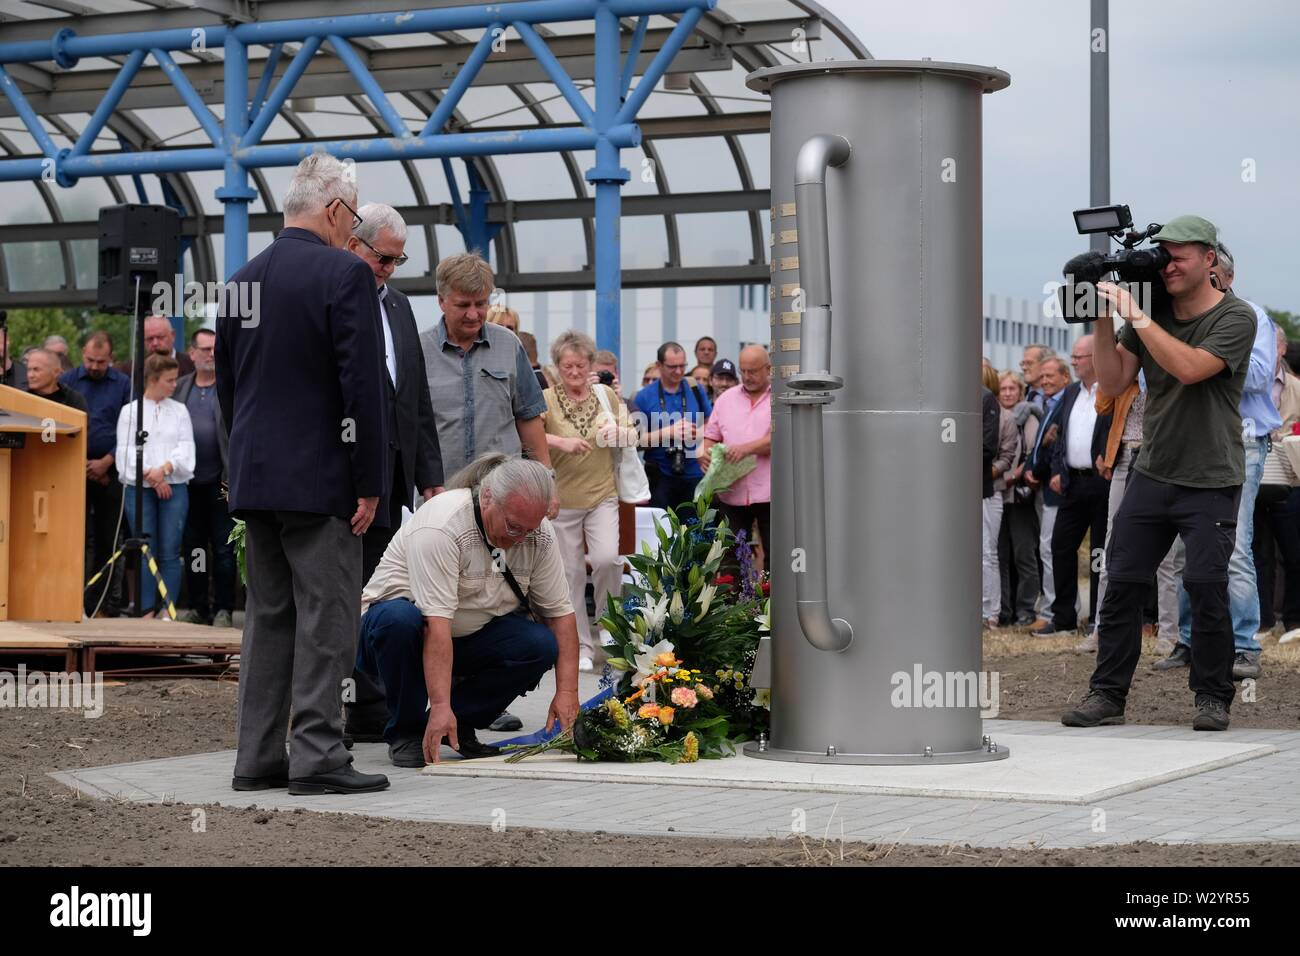 Bitterfeld Wolfen, Germany. 11th July, 2019. Participants in a commemoration ceremony place flowers at a monument in the Chemical Park. A stele commemorates the victims of the chemical accident of 11.07.1968, when 40 people died and more than 240 were injured. Credit: Sebastian Willnow/dpa-Zentralbild/ZB/dpa/Alamy Live News - Stock Image